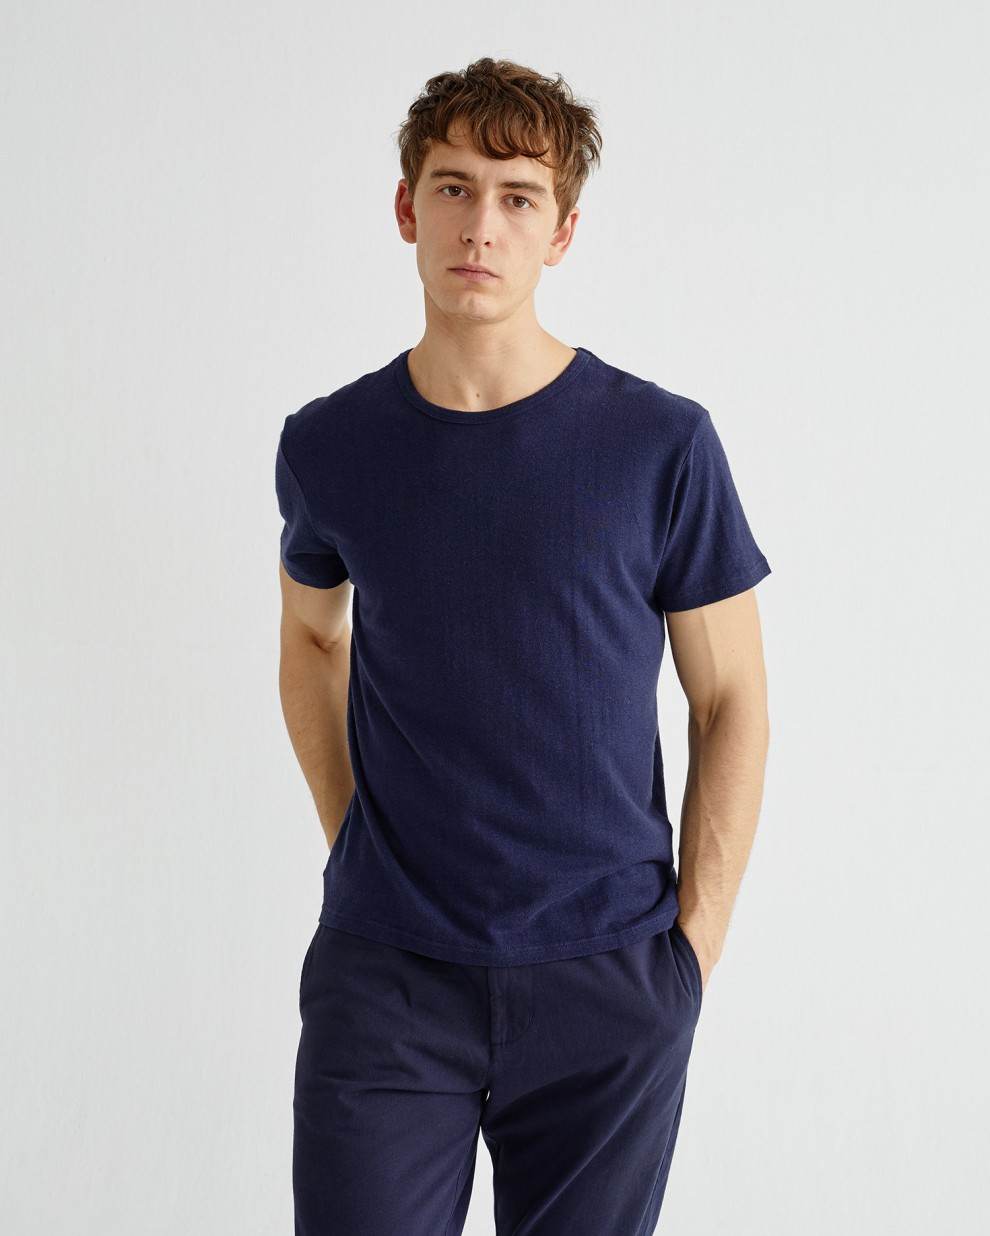 BASIC NAVY HEMP T-SHIRT